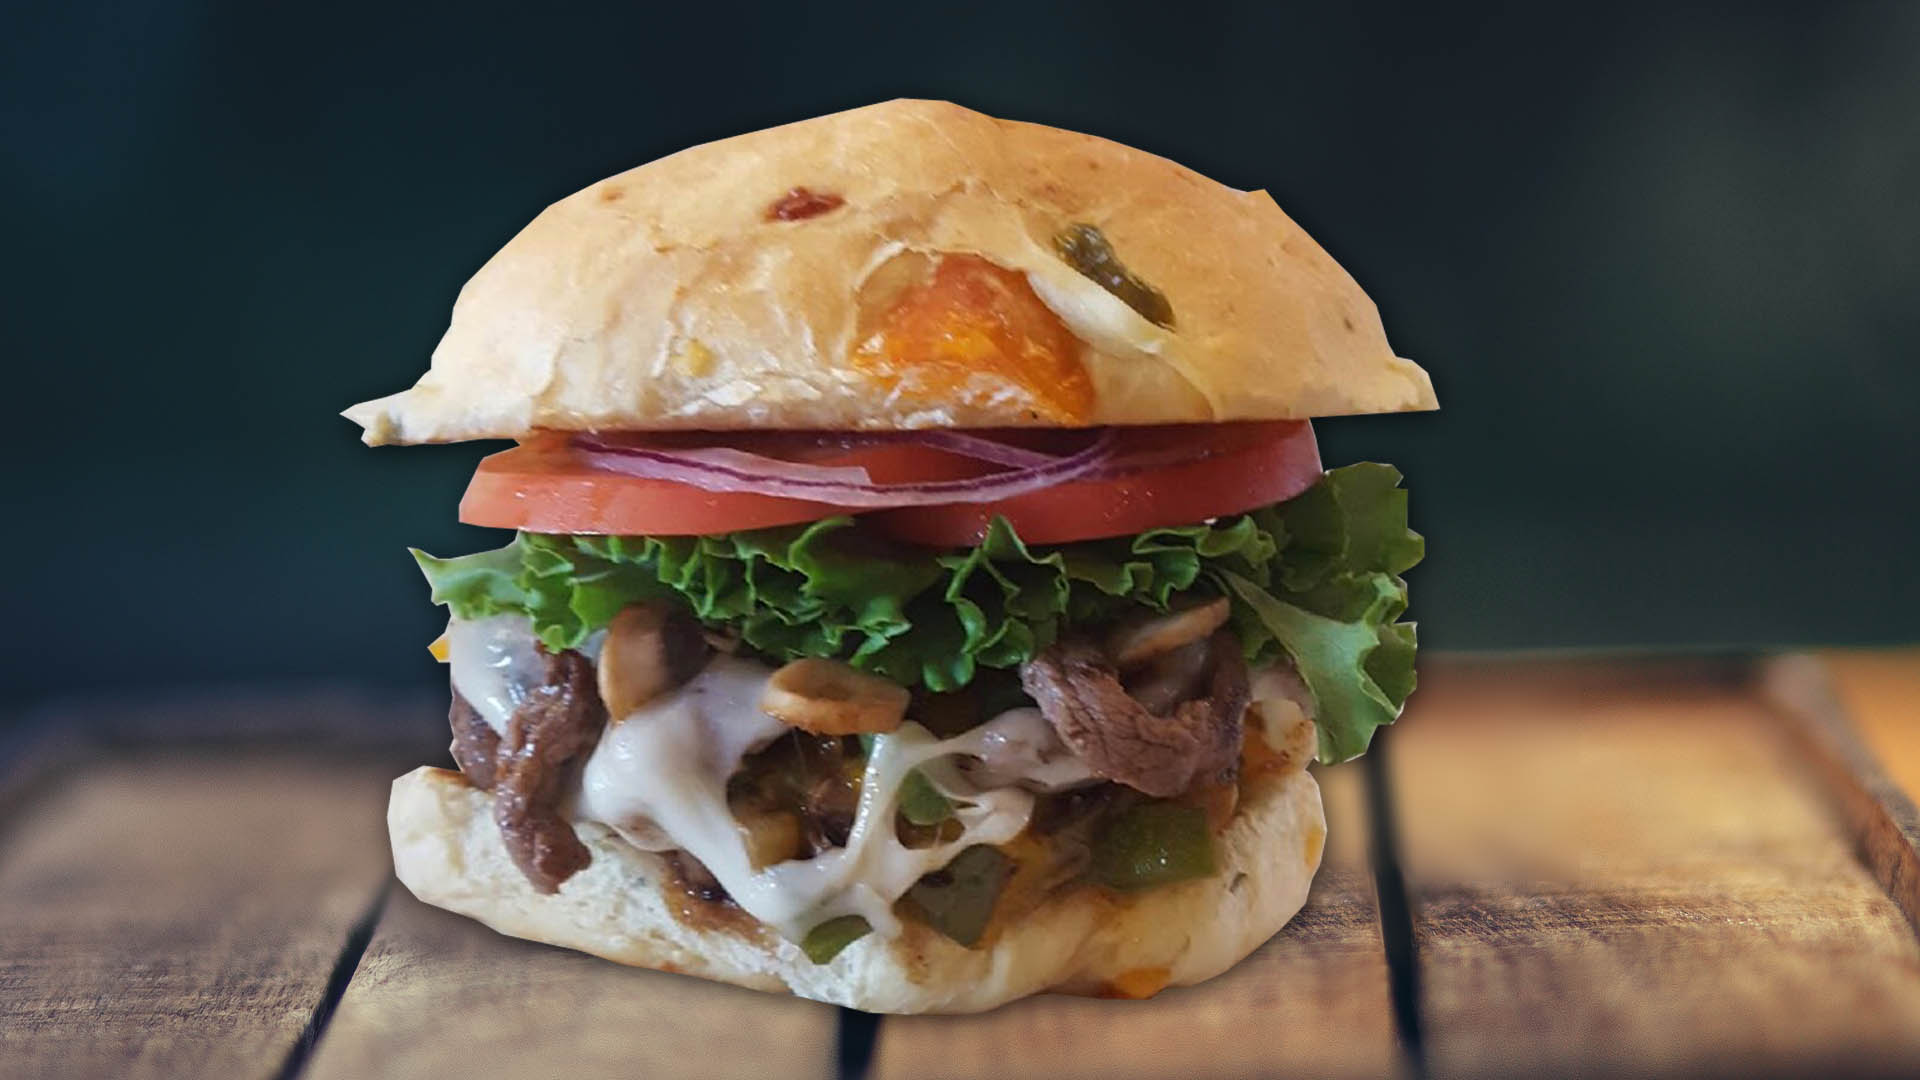 Philly Steak Cheese Burger